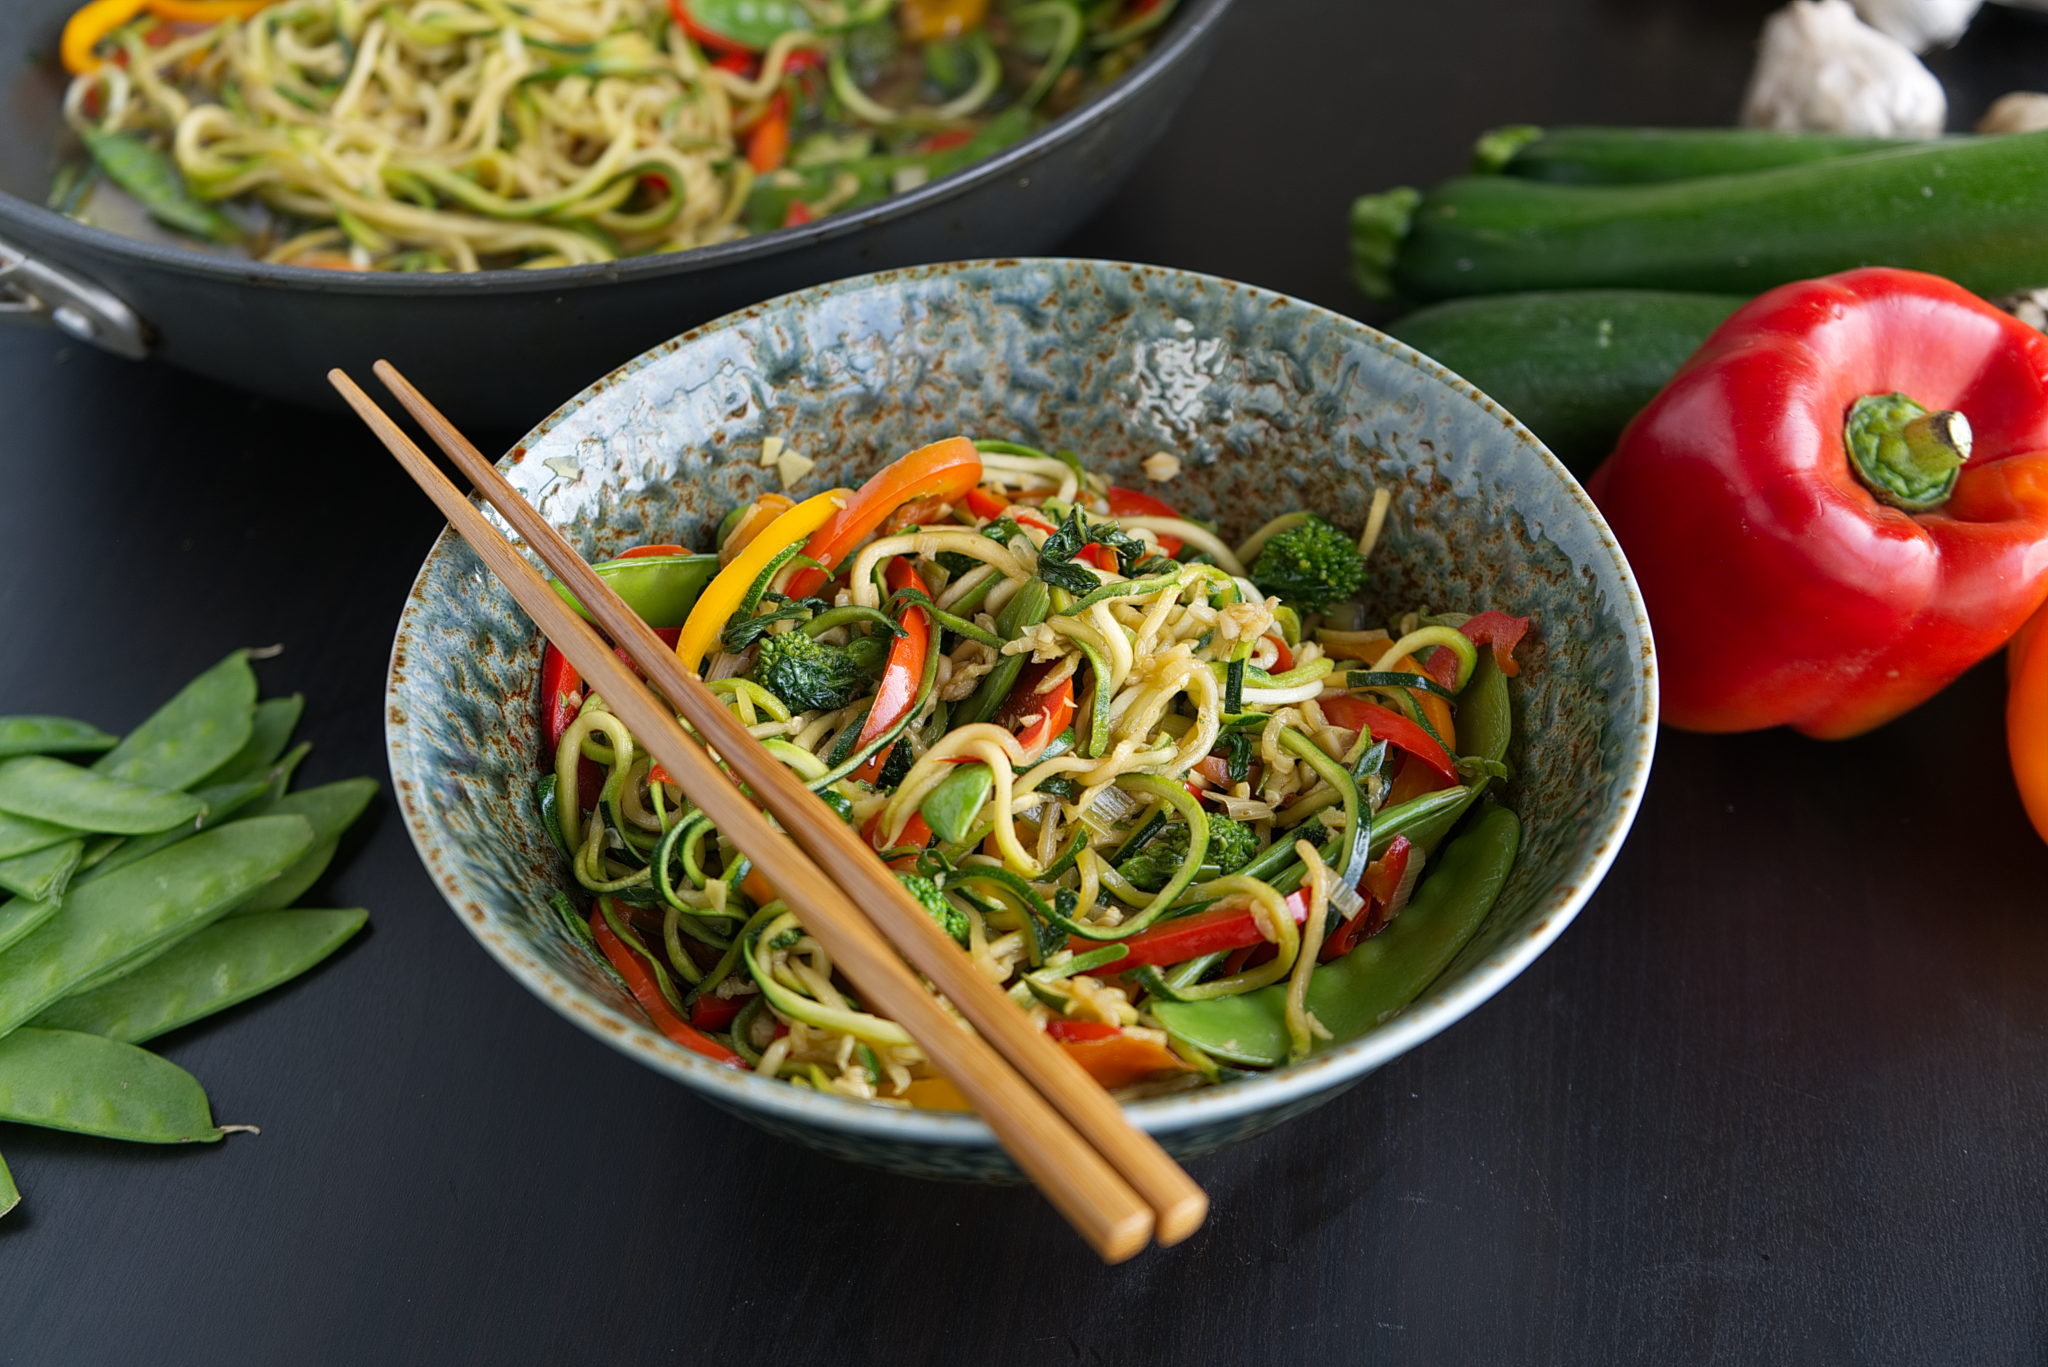 stir-fry-broccoli-rabe